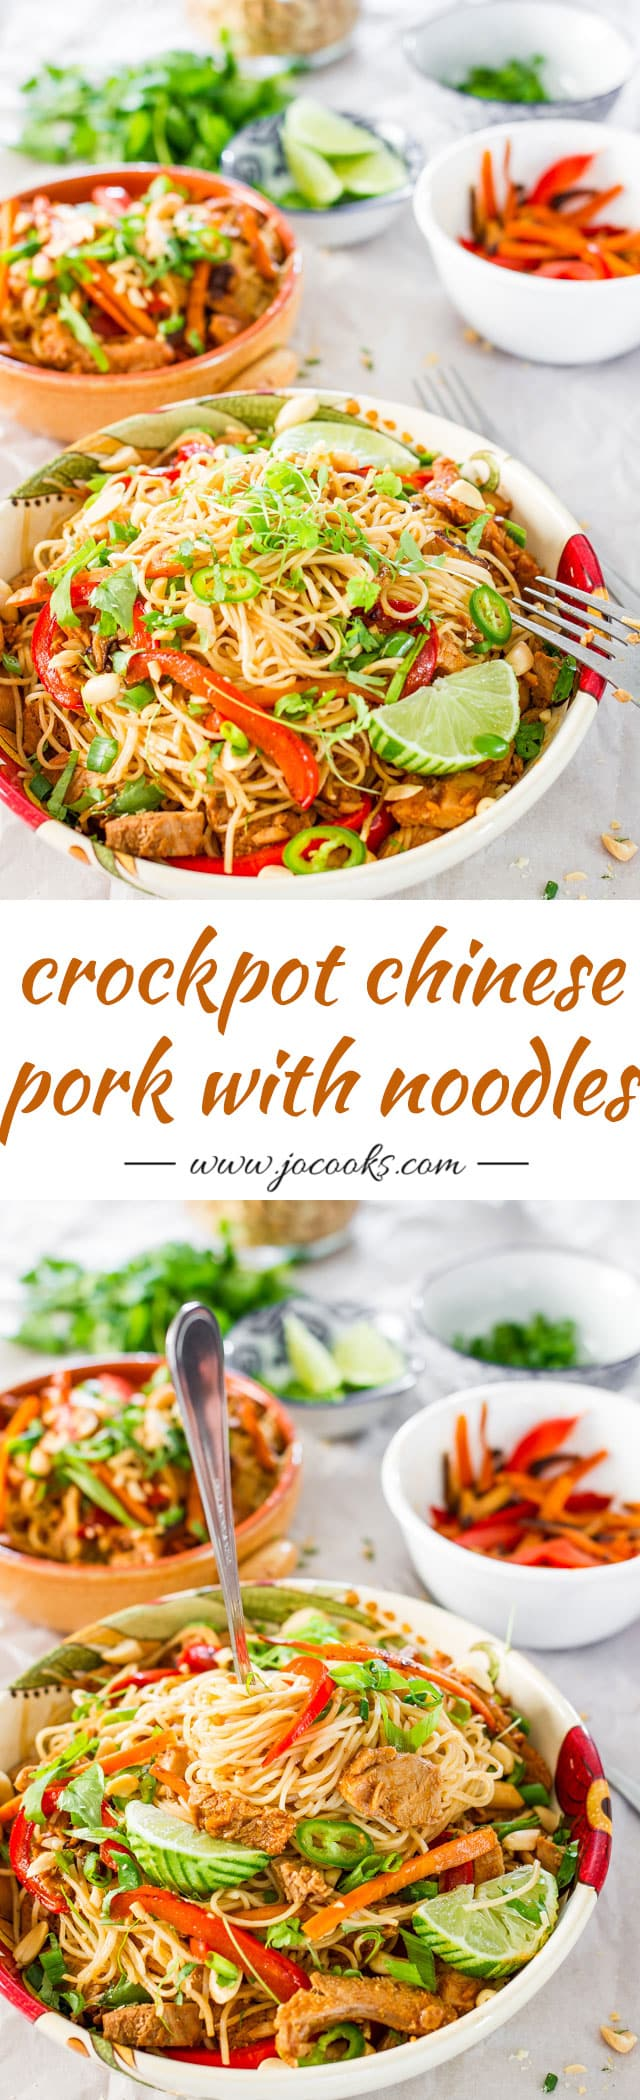 Crockpot Chinese Pork with Noodles - Slow cooked Chinese style pork tenderloin tossed with noodles and veggies. These noodles are bound to please the entire family! #crockpotrecipes #crockpotpork